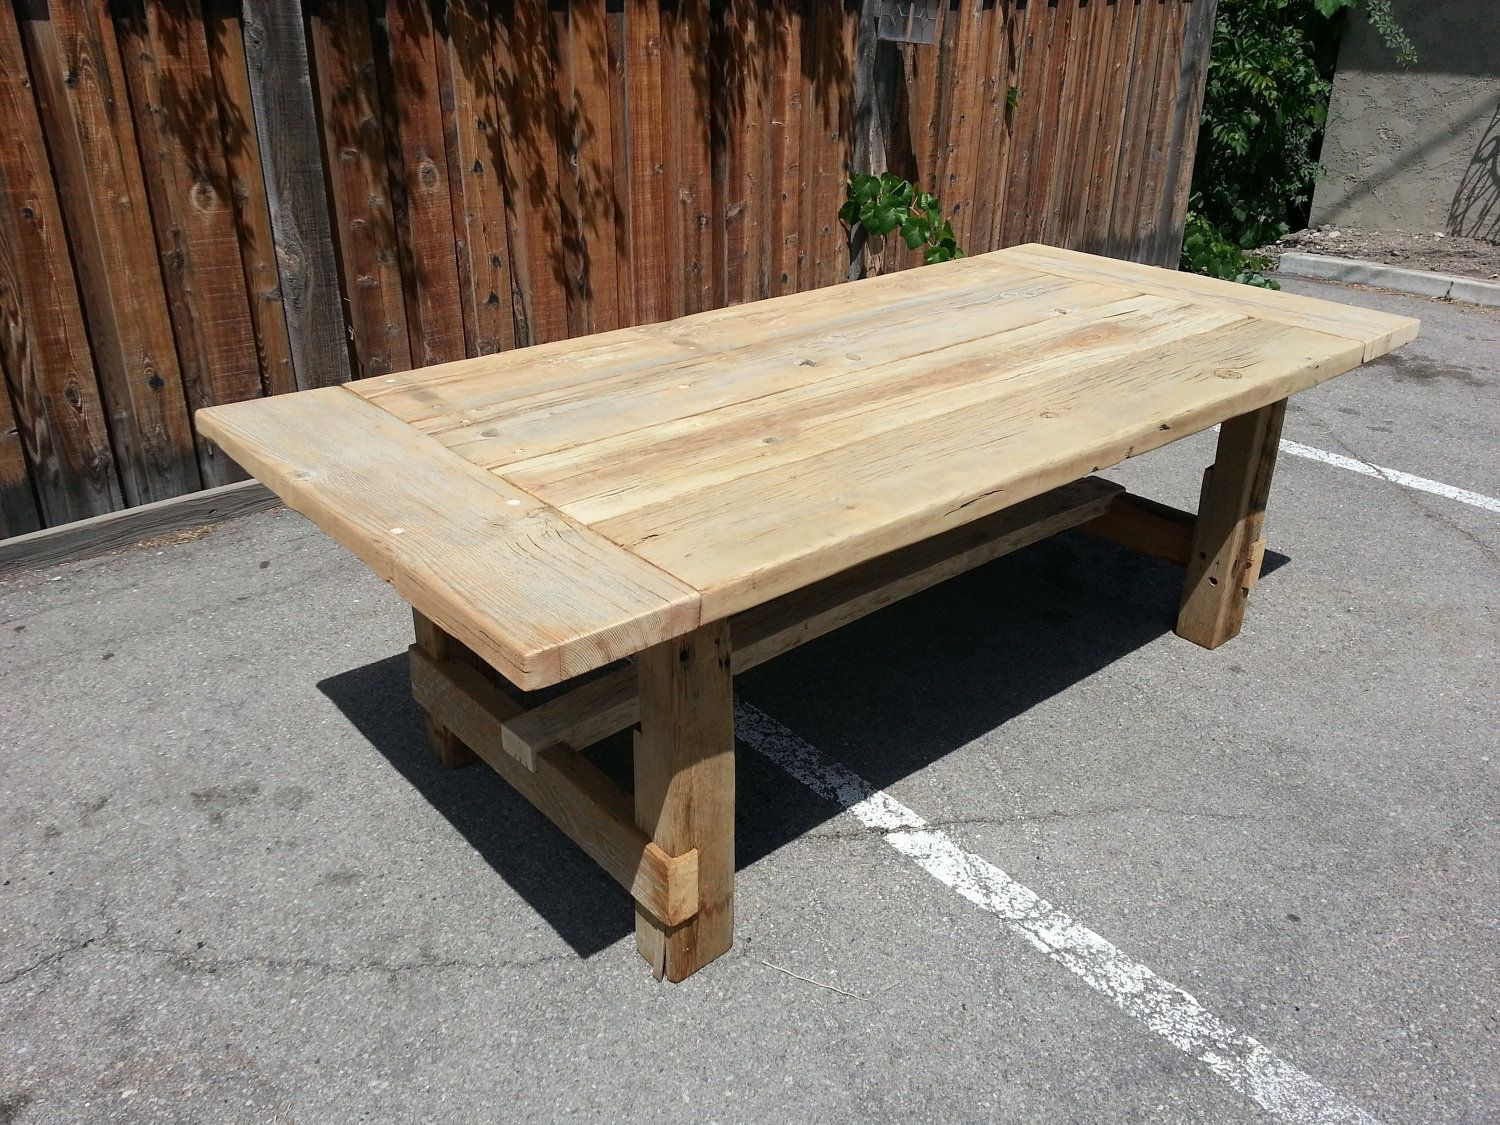 Farmhouse Salvaged Reclaimed Wood Rectangular Table Similar To Restoration Hardware Design But Not Made In China 1 500 00 Via Etsy